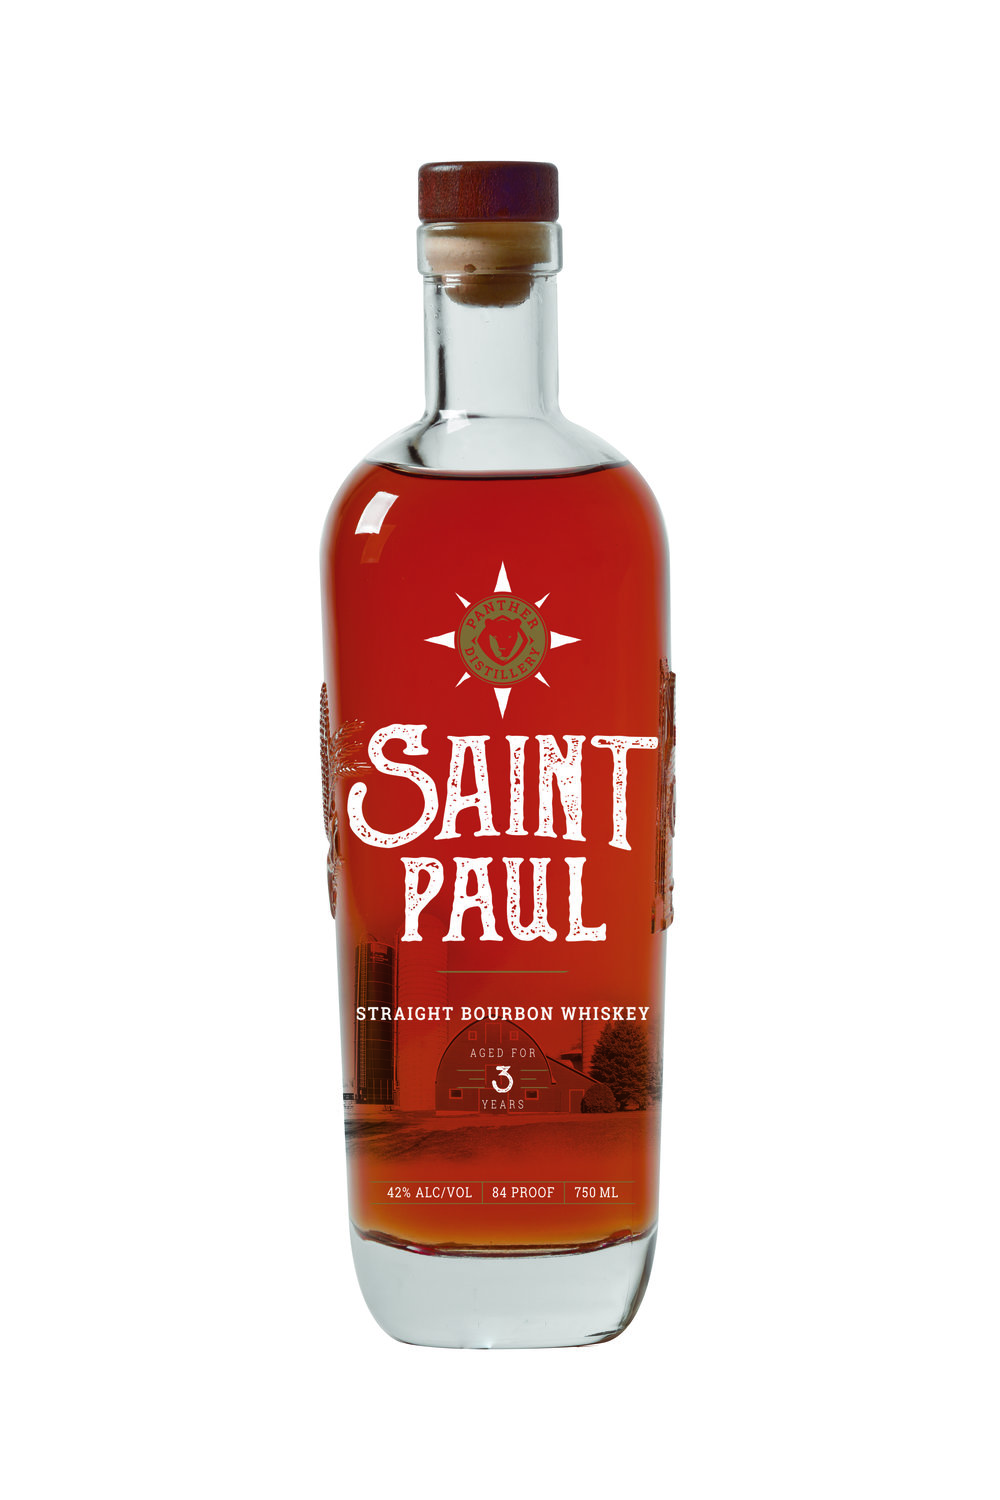 Saint Paul Straight Bourbon